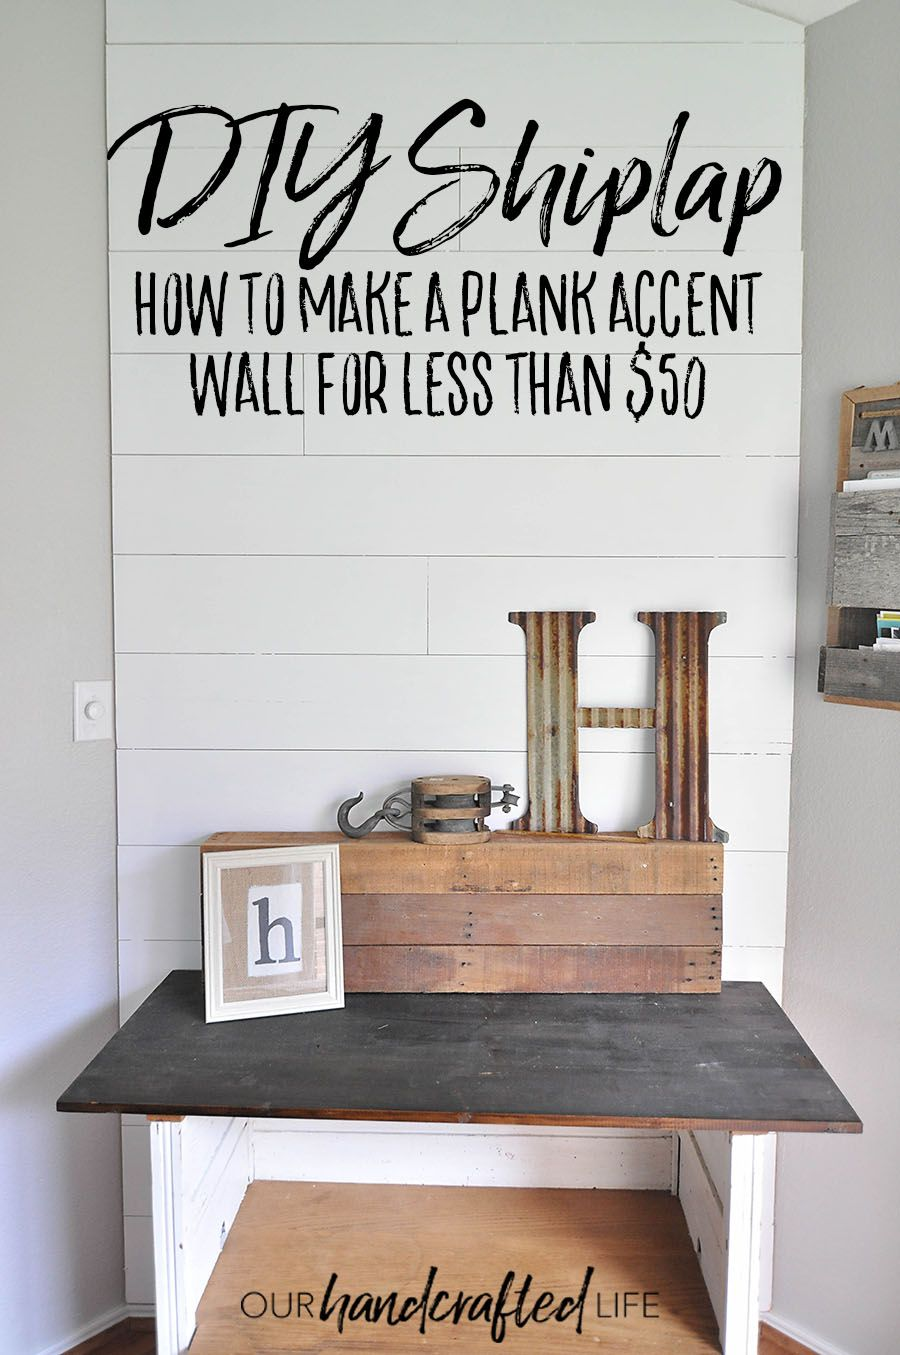 How To Plank An Accent Wall Diy Shiplap For Less Than 50 Our Handcrafted Life Shiplap Accent Wall Diy Shiplap Diy Wood Wall